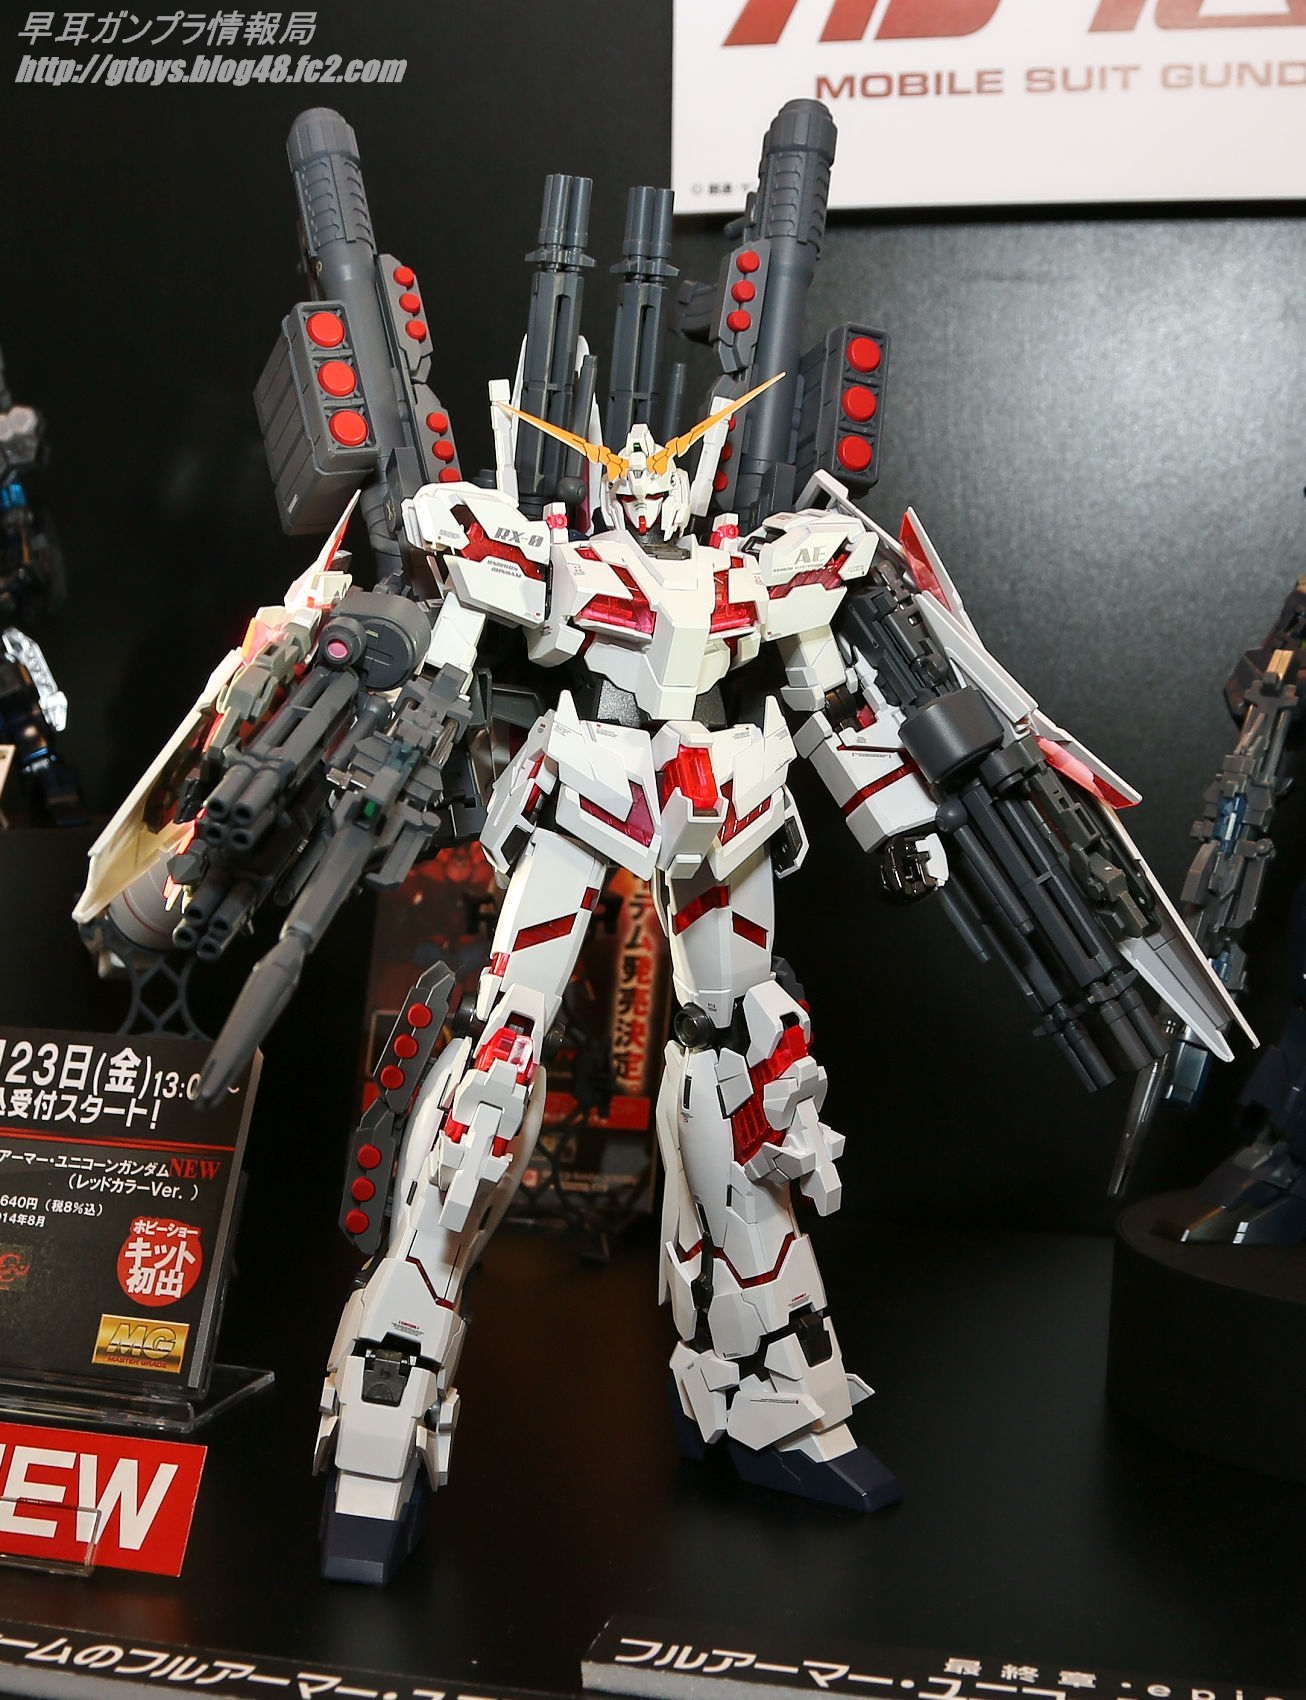 p bandai mg 1 100 full armor unicorn gundam red color ver 第53